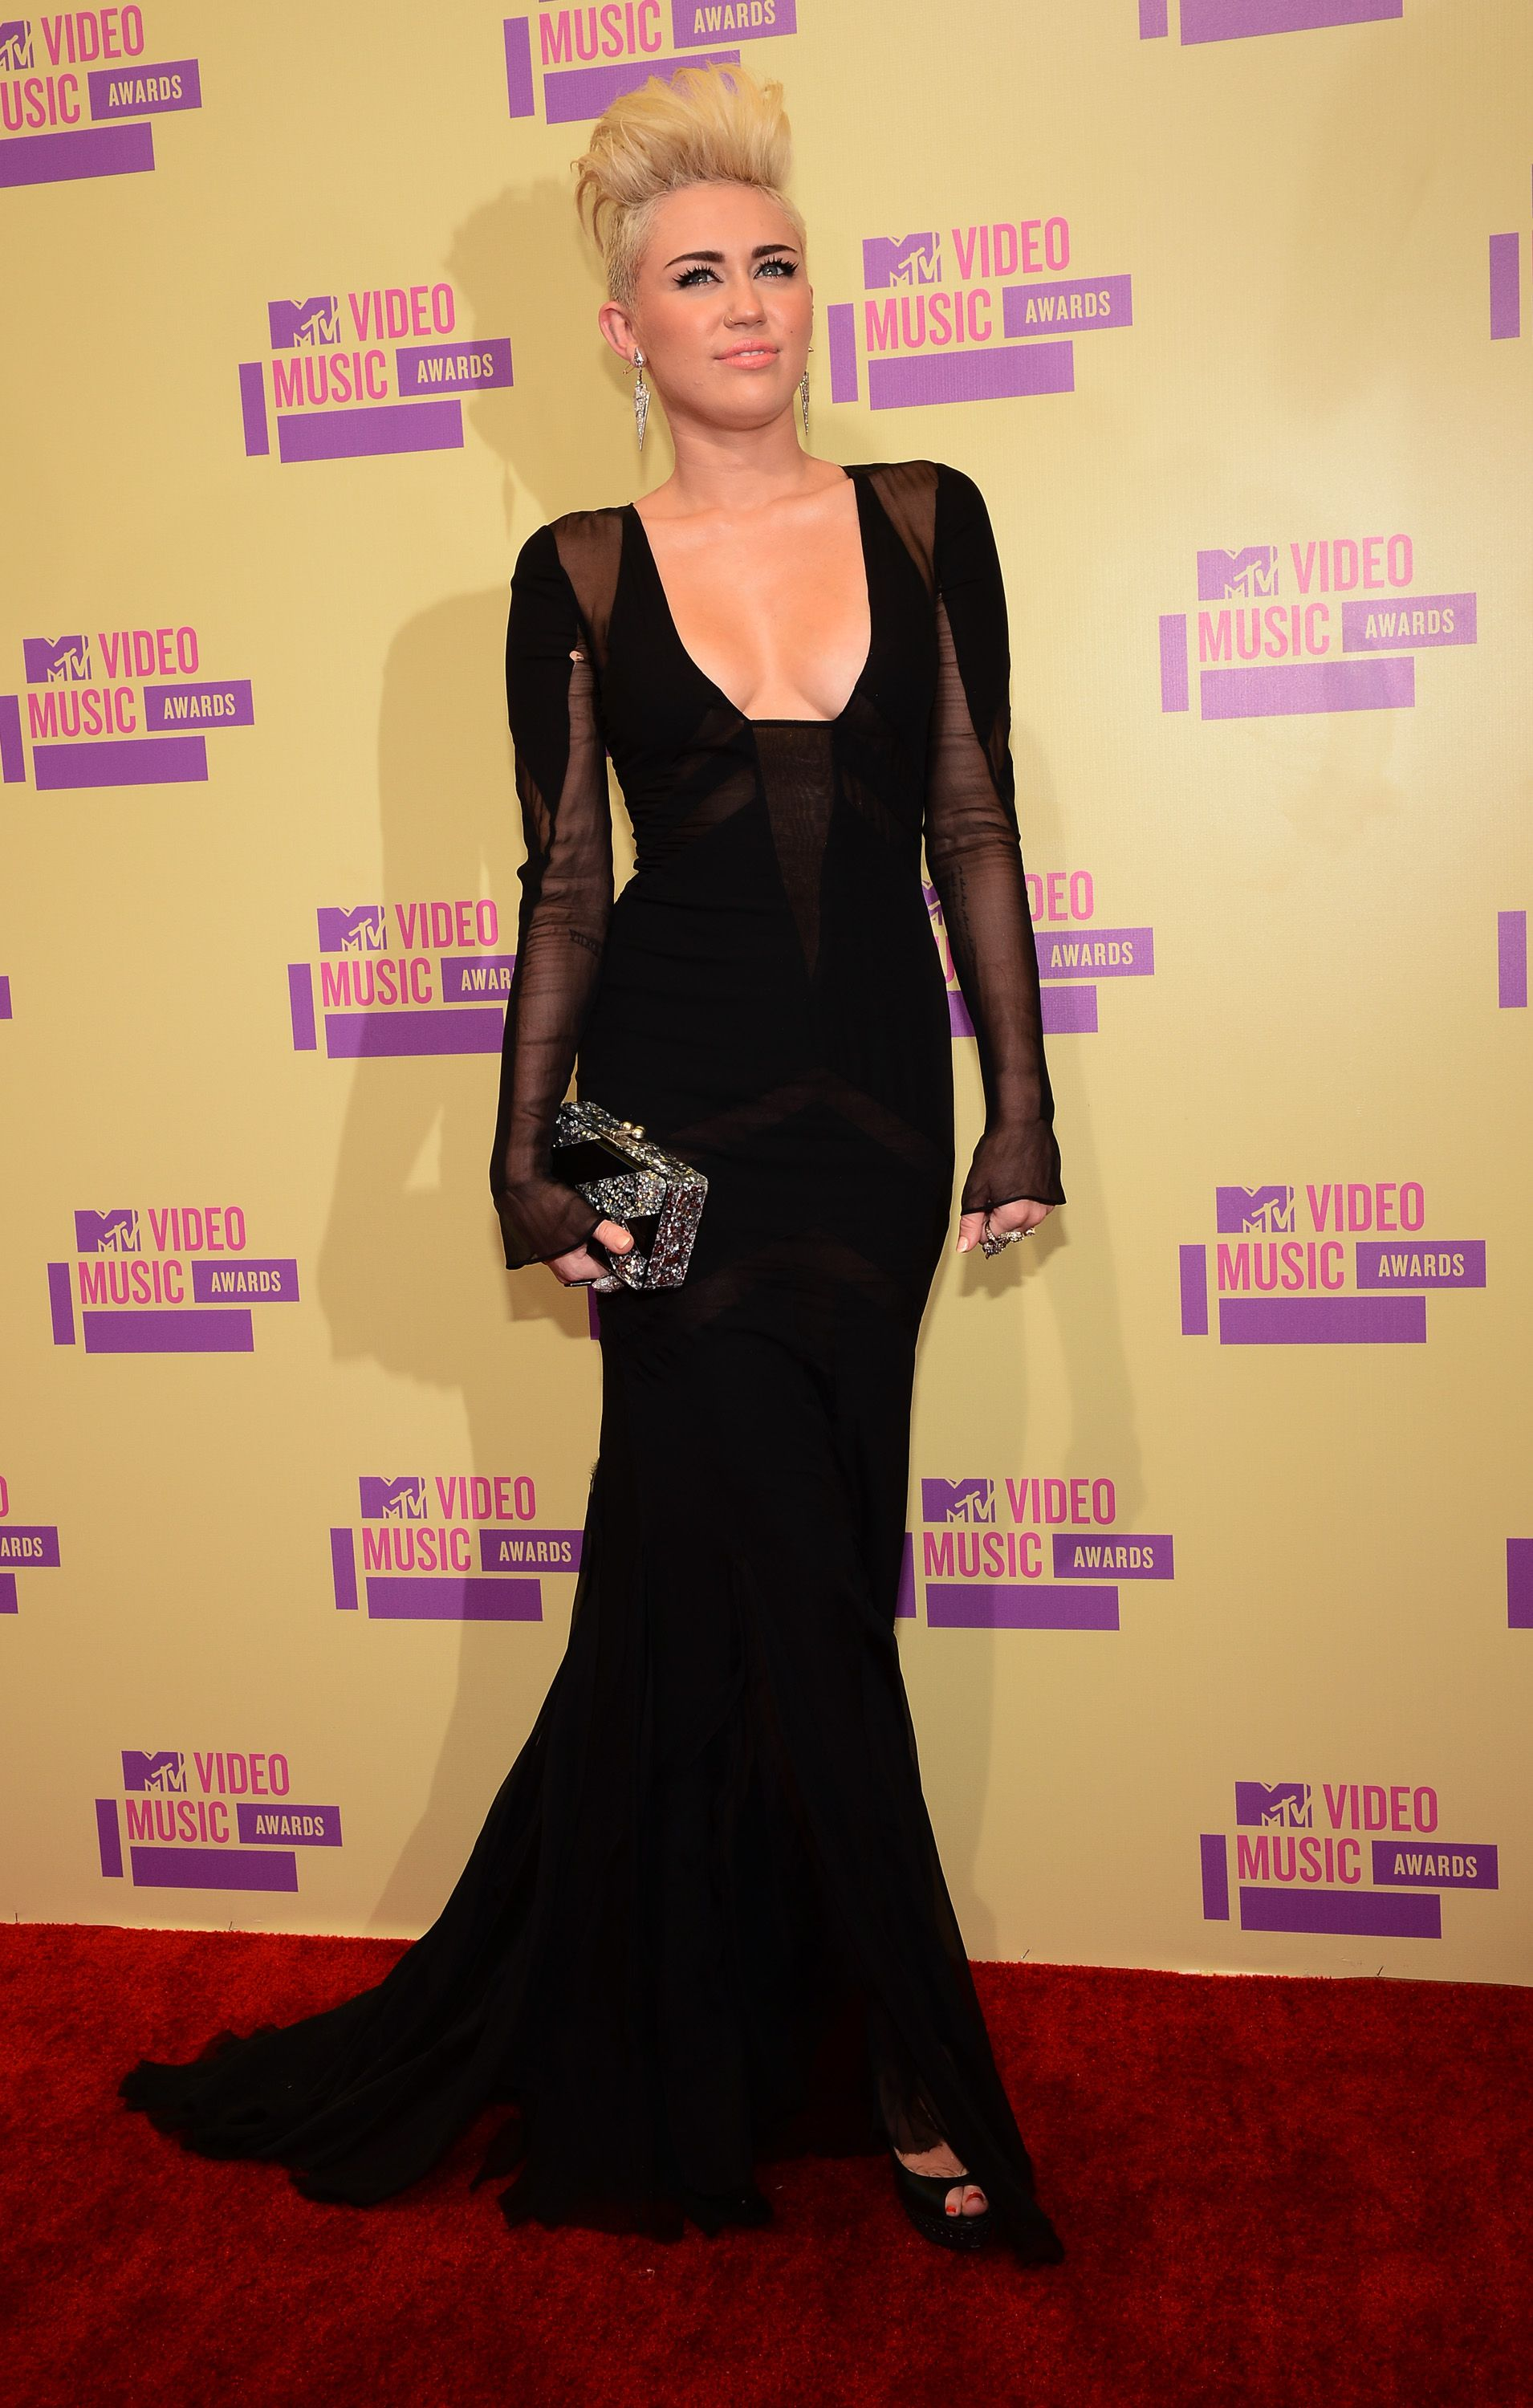 Miley Cyrus - MTV Video Music Awards in LA September 2012 in Emilio Pucci Fall 2012 Gown, Edie Parker Clutch